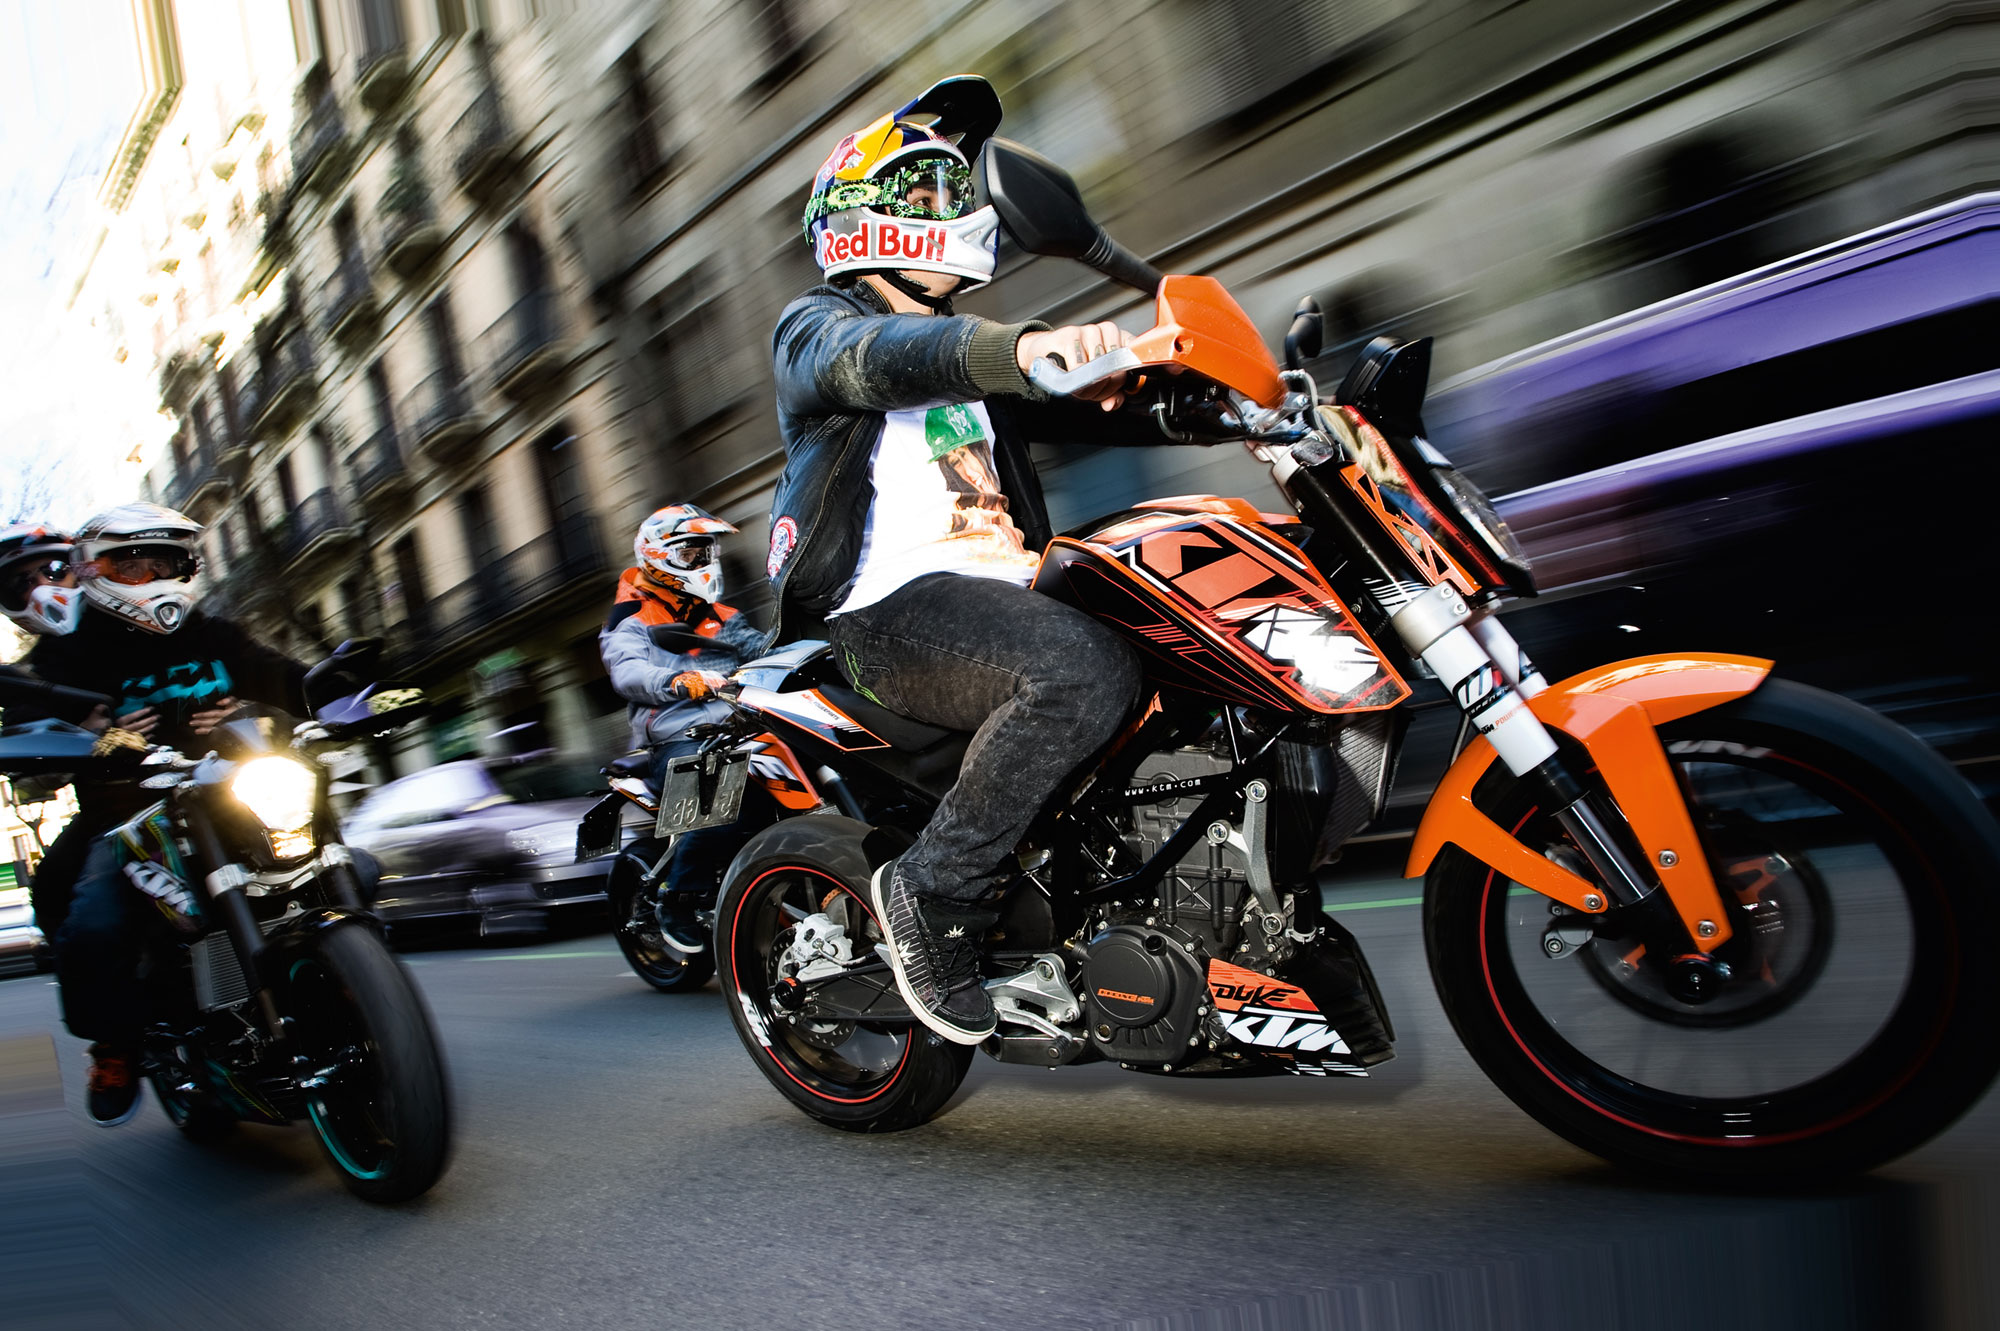 2012 Ktm 125 Duke Review